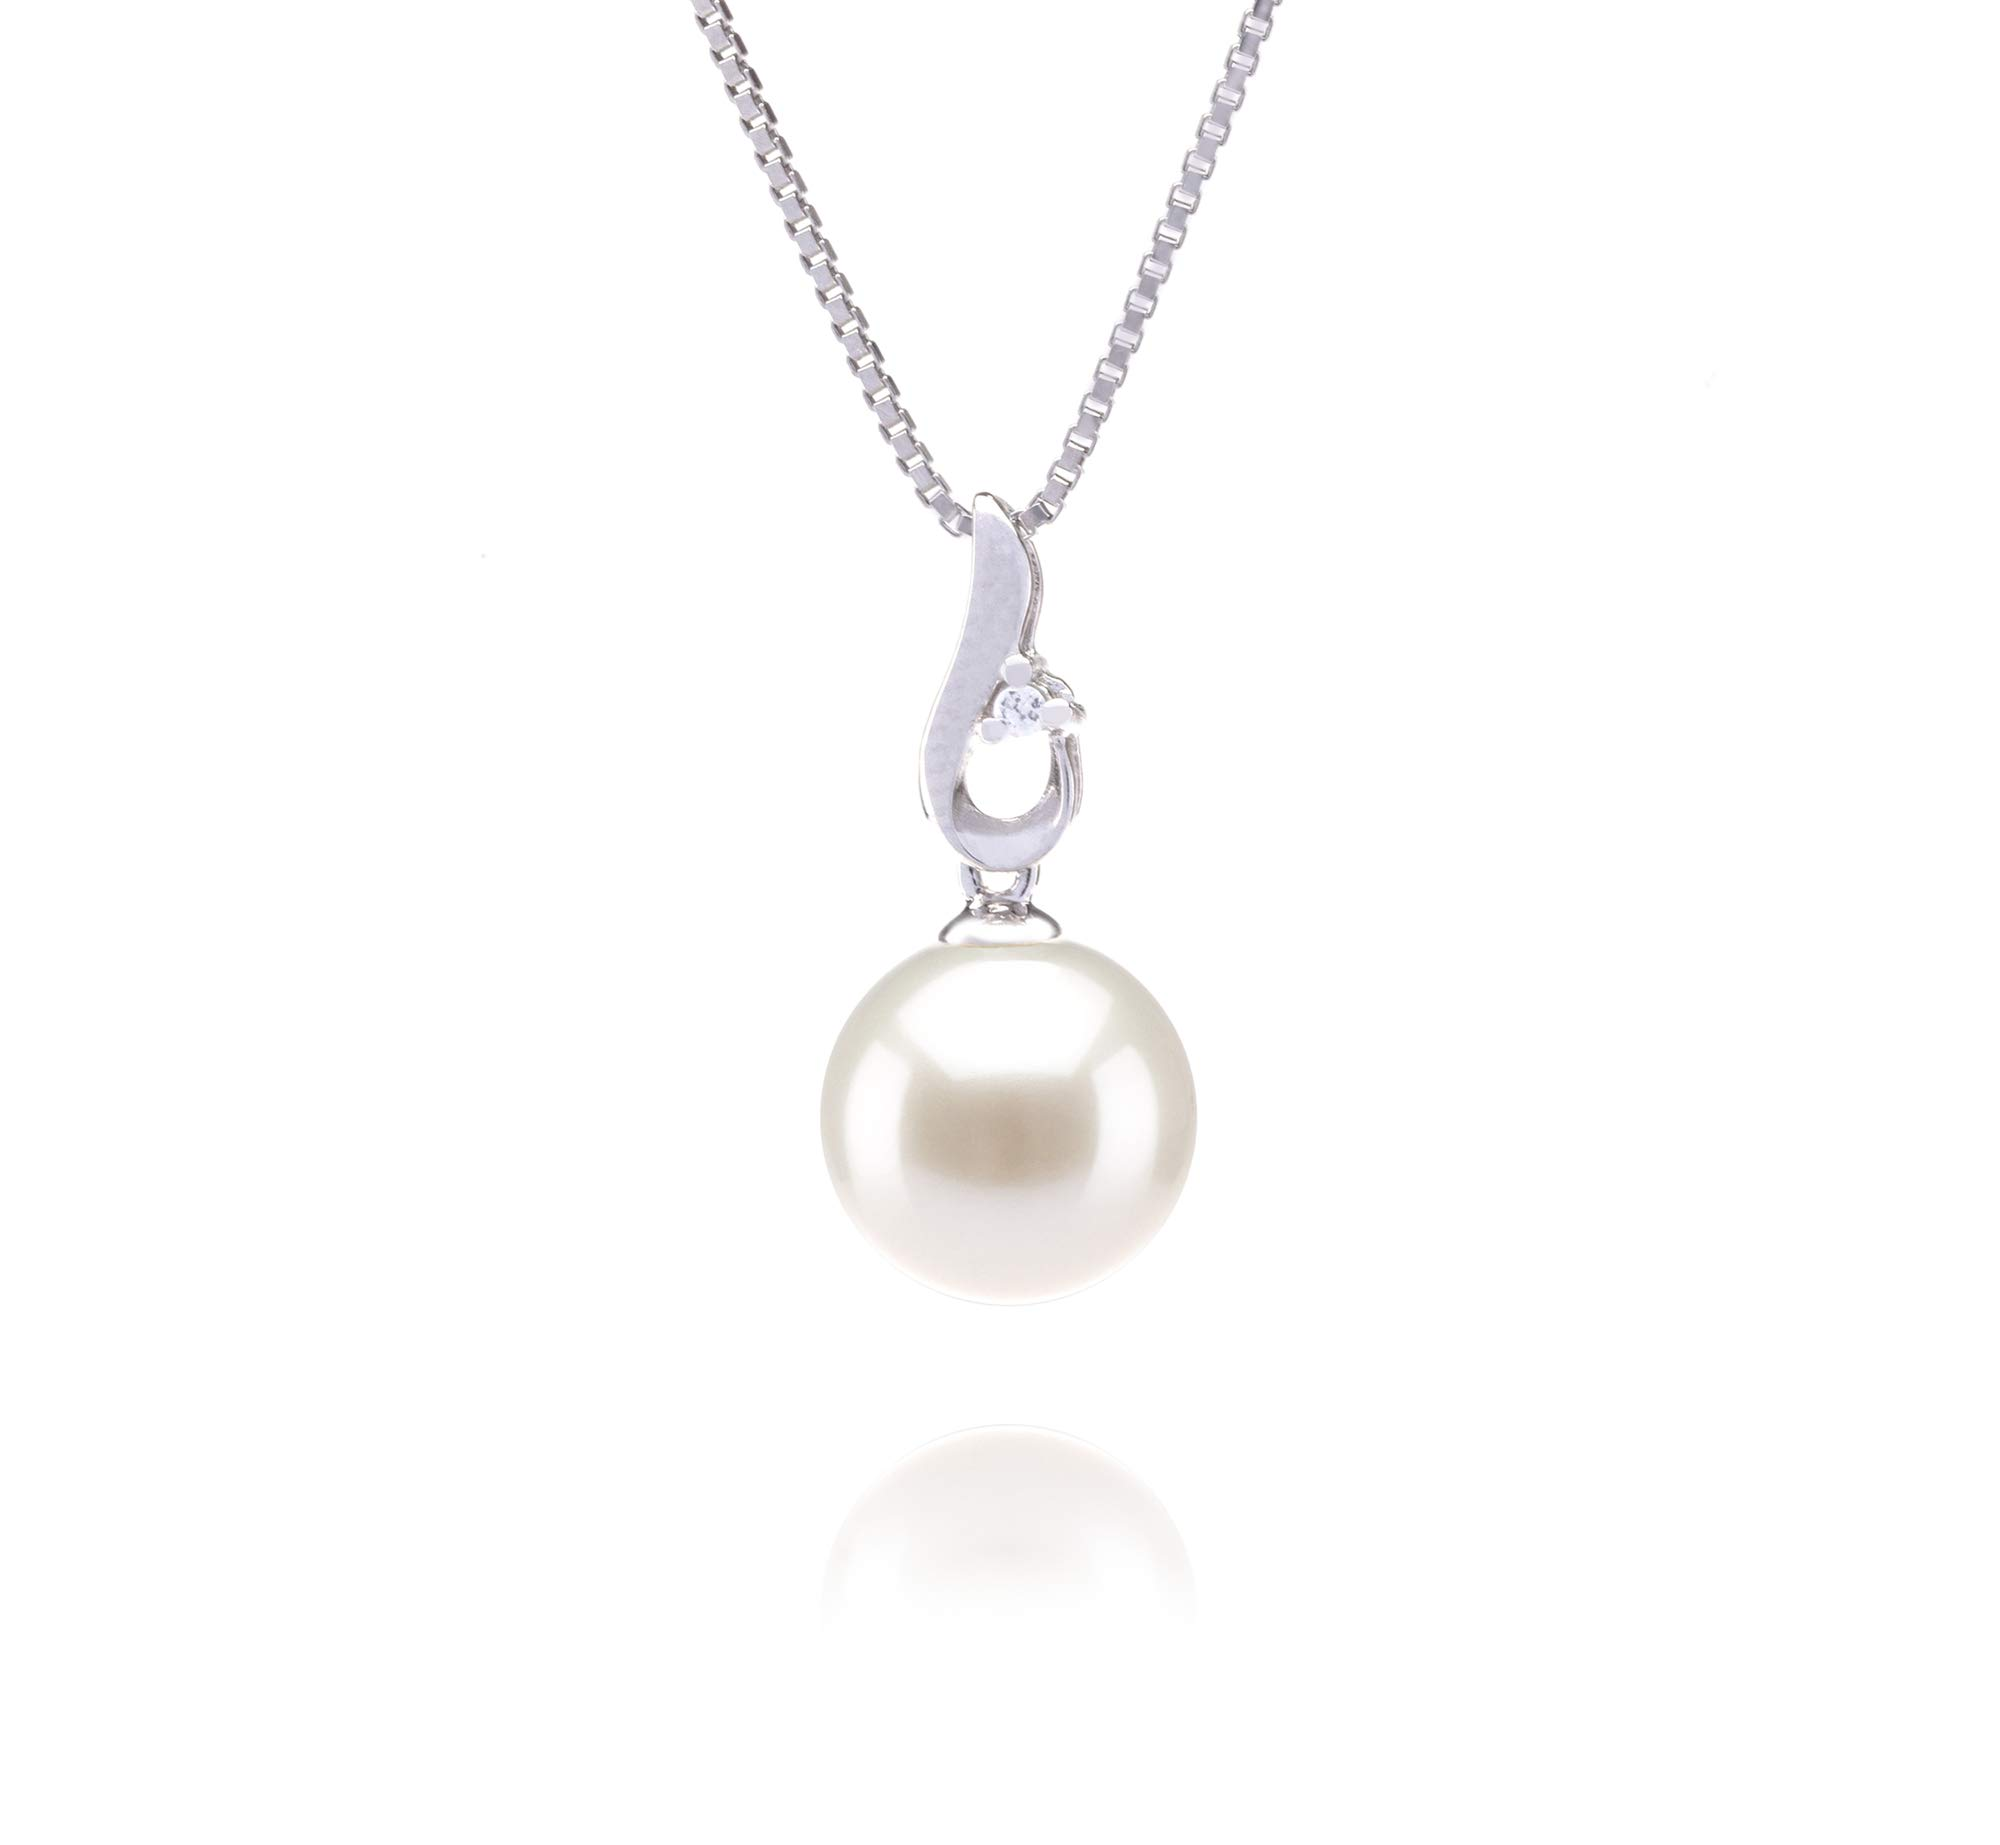 Courtney White 9-10mm AAAA Quality Freshwater 925 Sterling Silver Cultured Pearl Pendant For Women by PearlsOnly